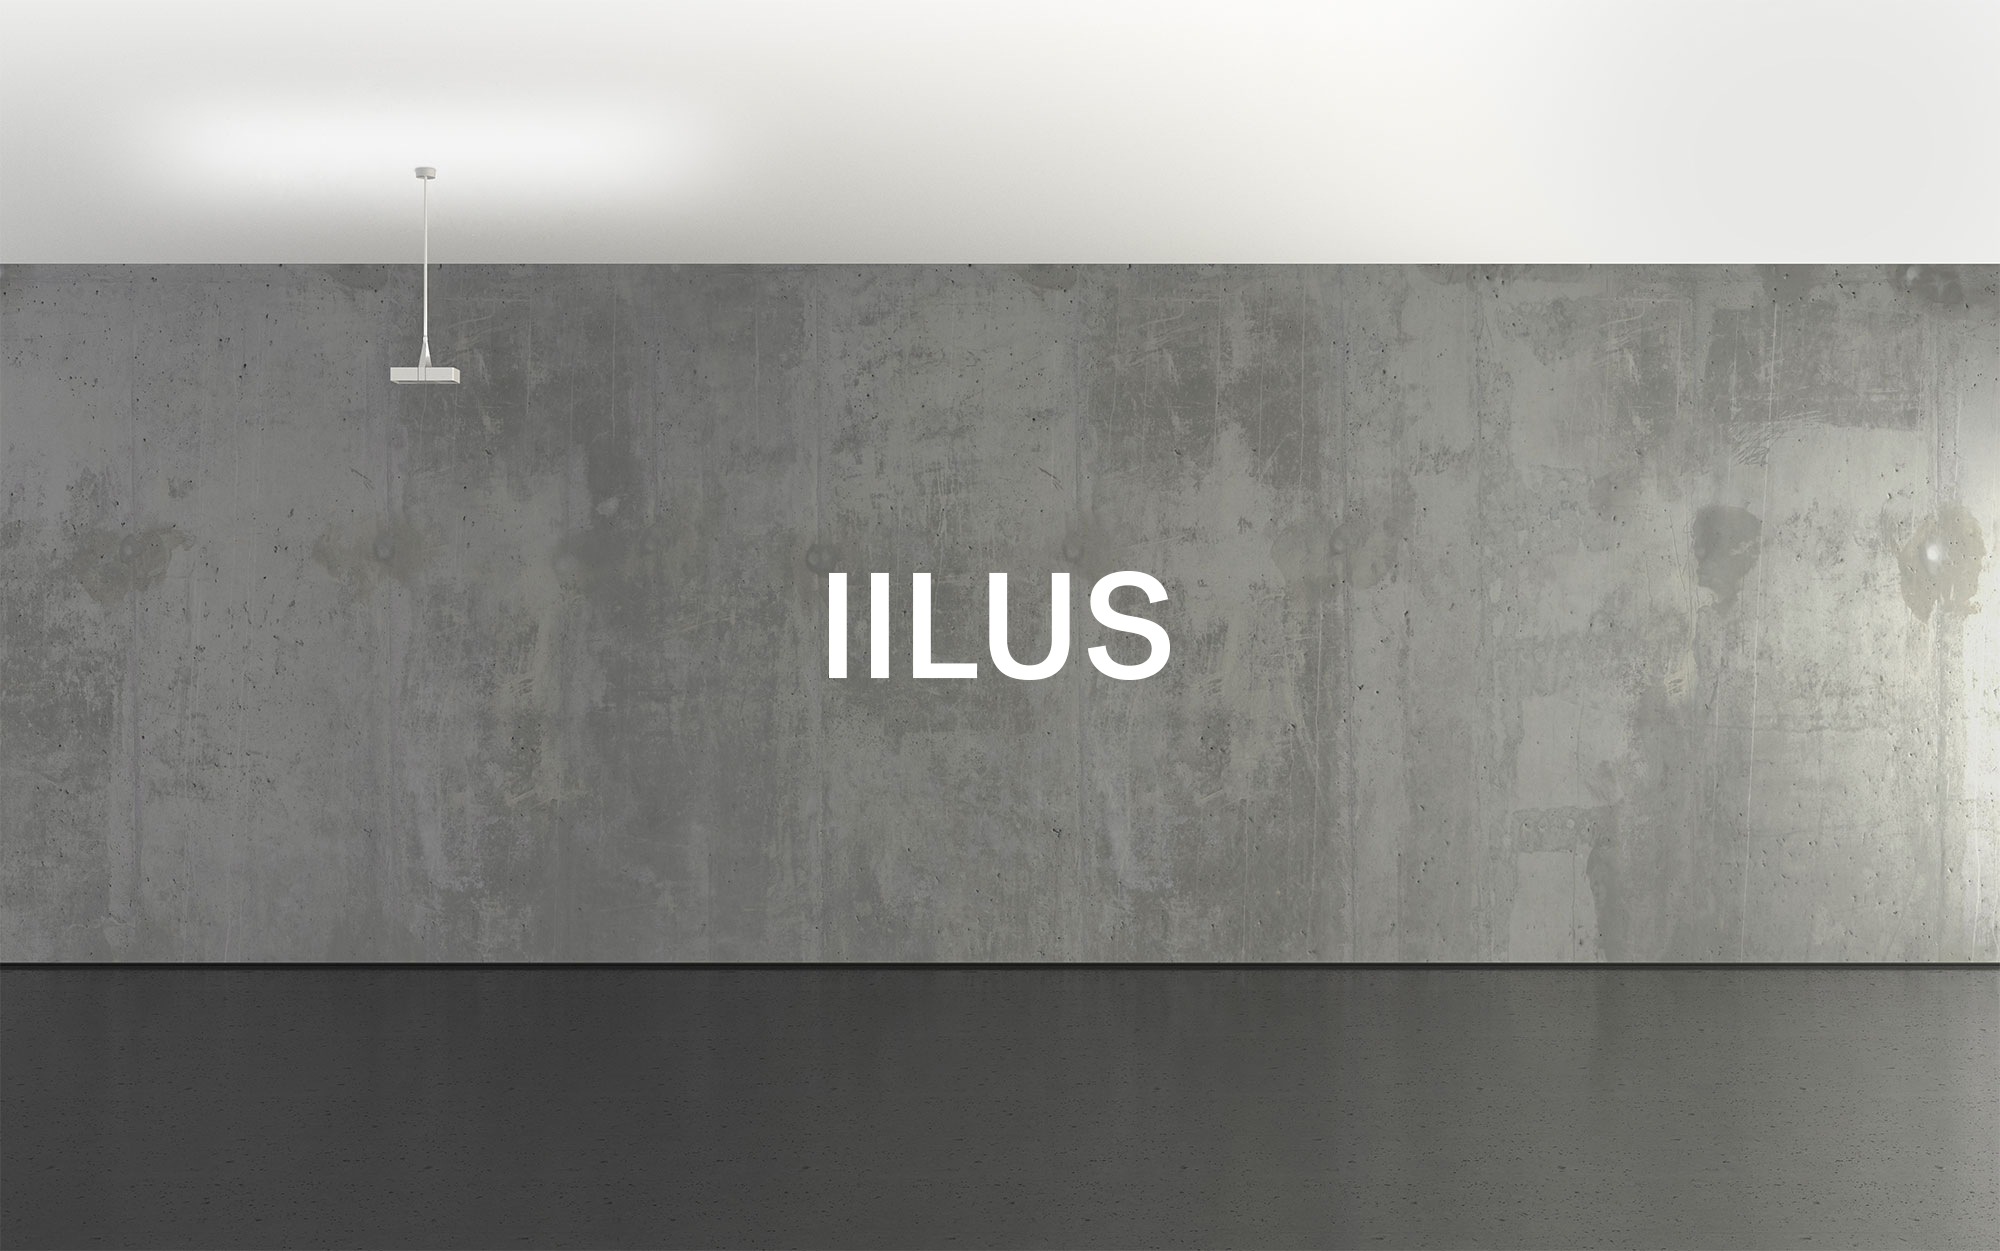 Journal iilus intro 01